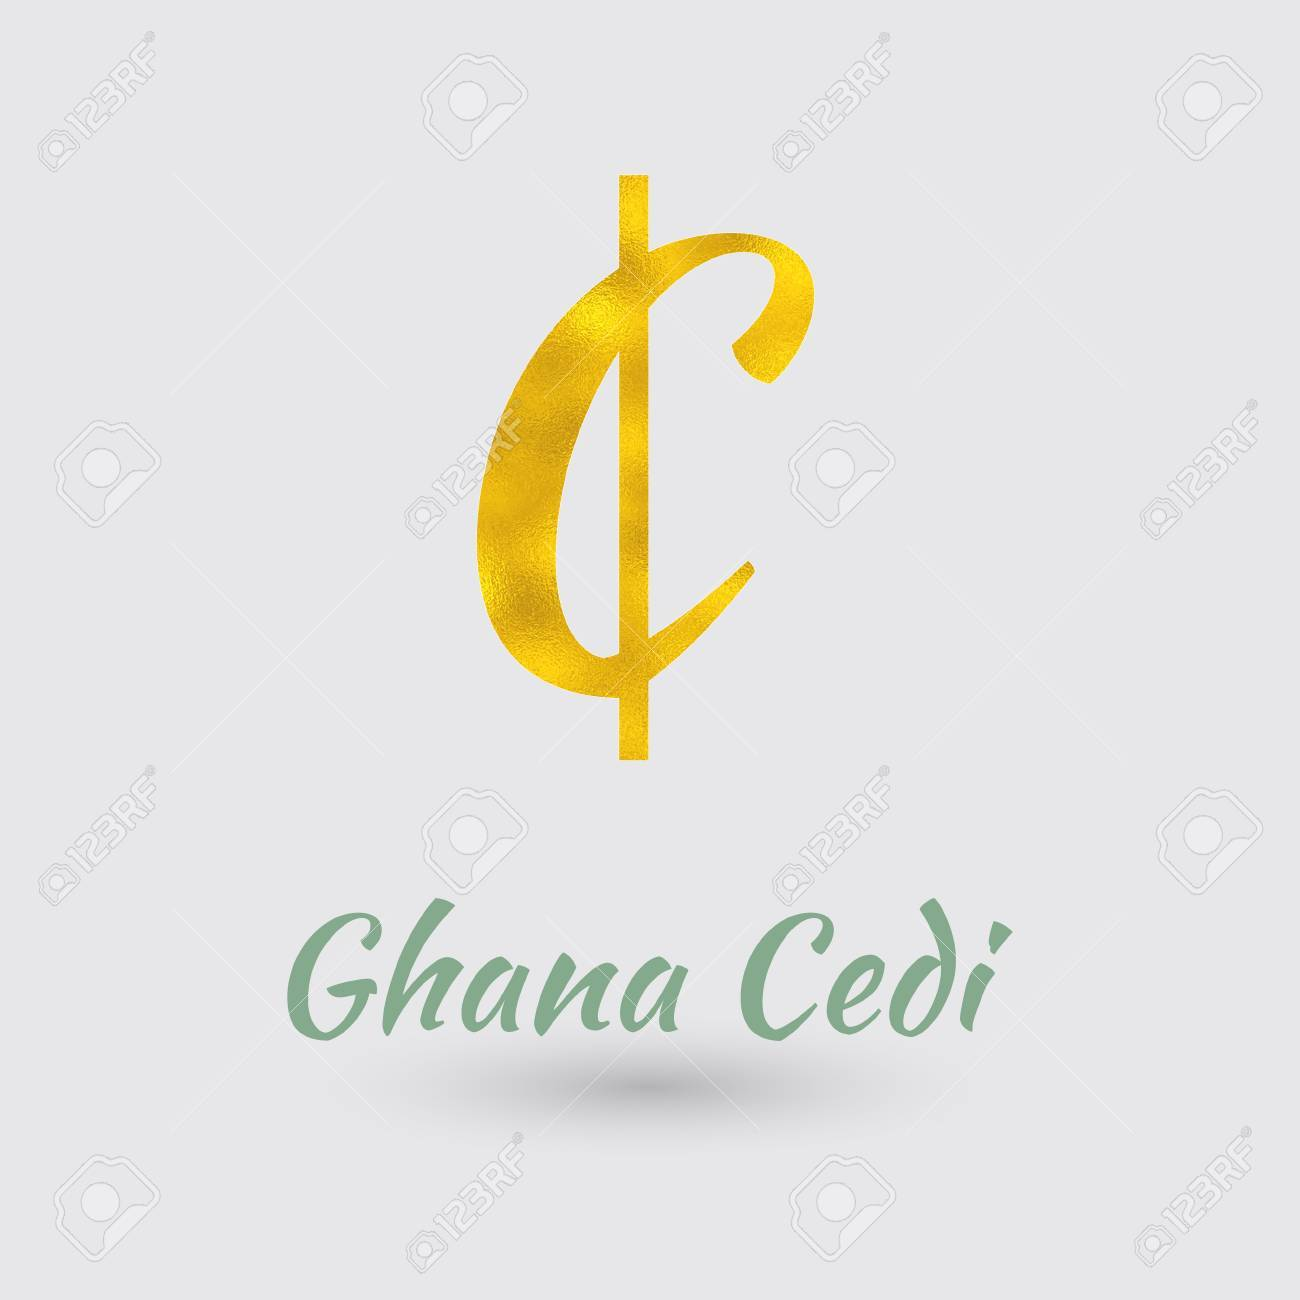 Symbol Of The Ghana Cedi Currency With Golden Texture Text With